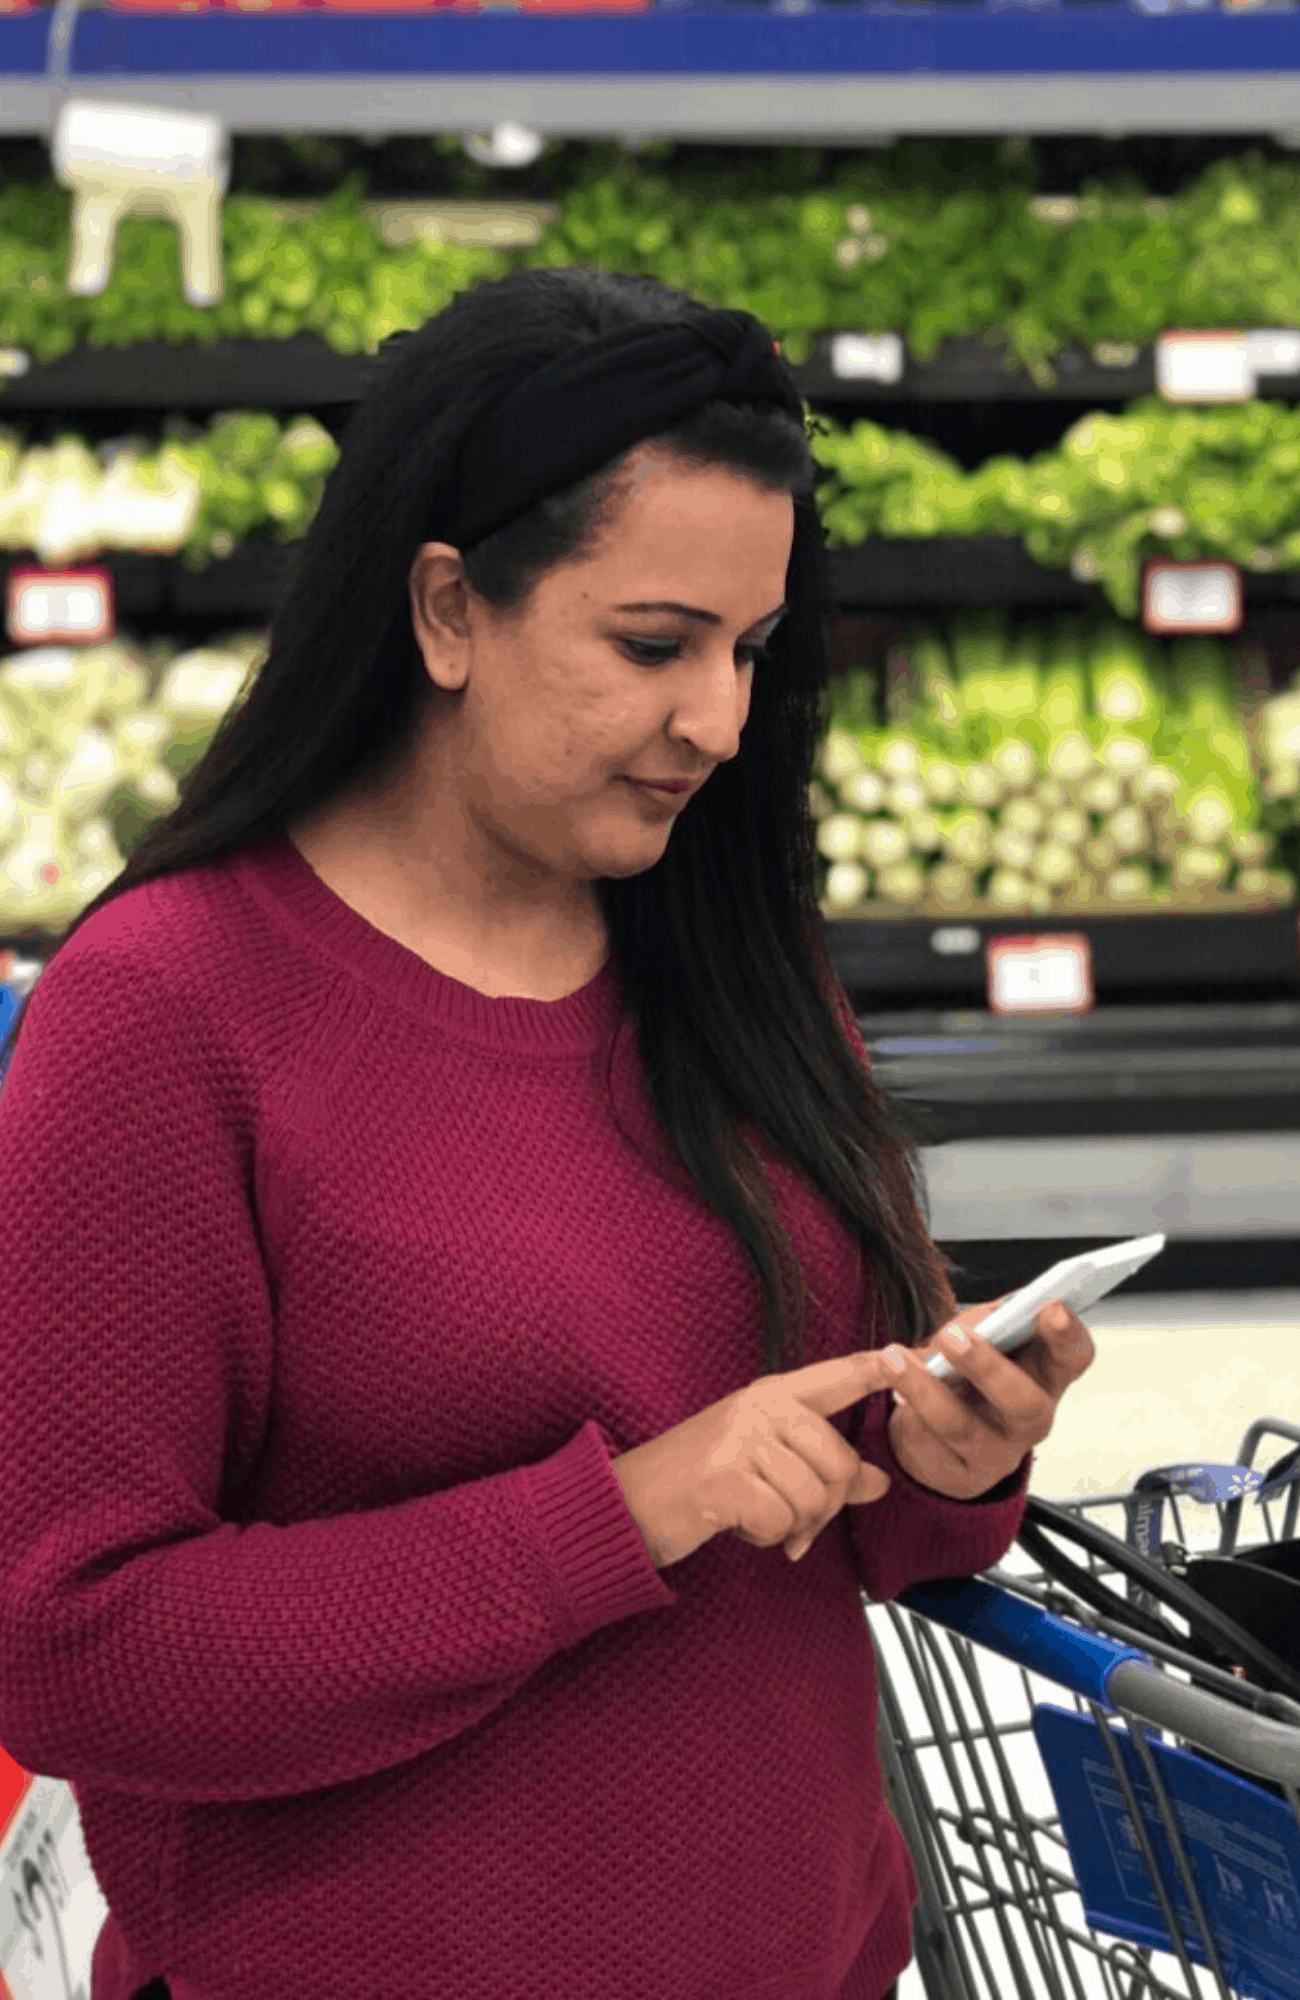 8 ways to save money on your grocery bills